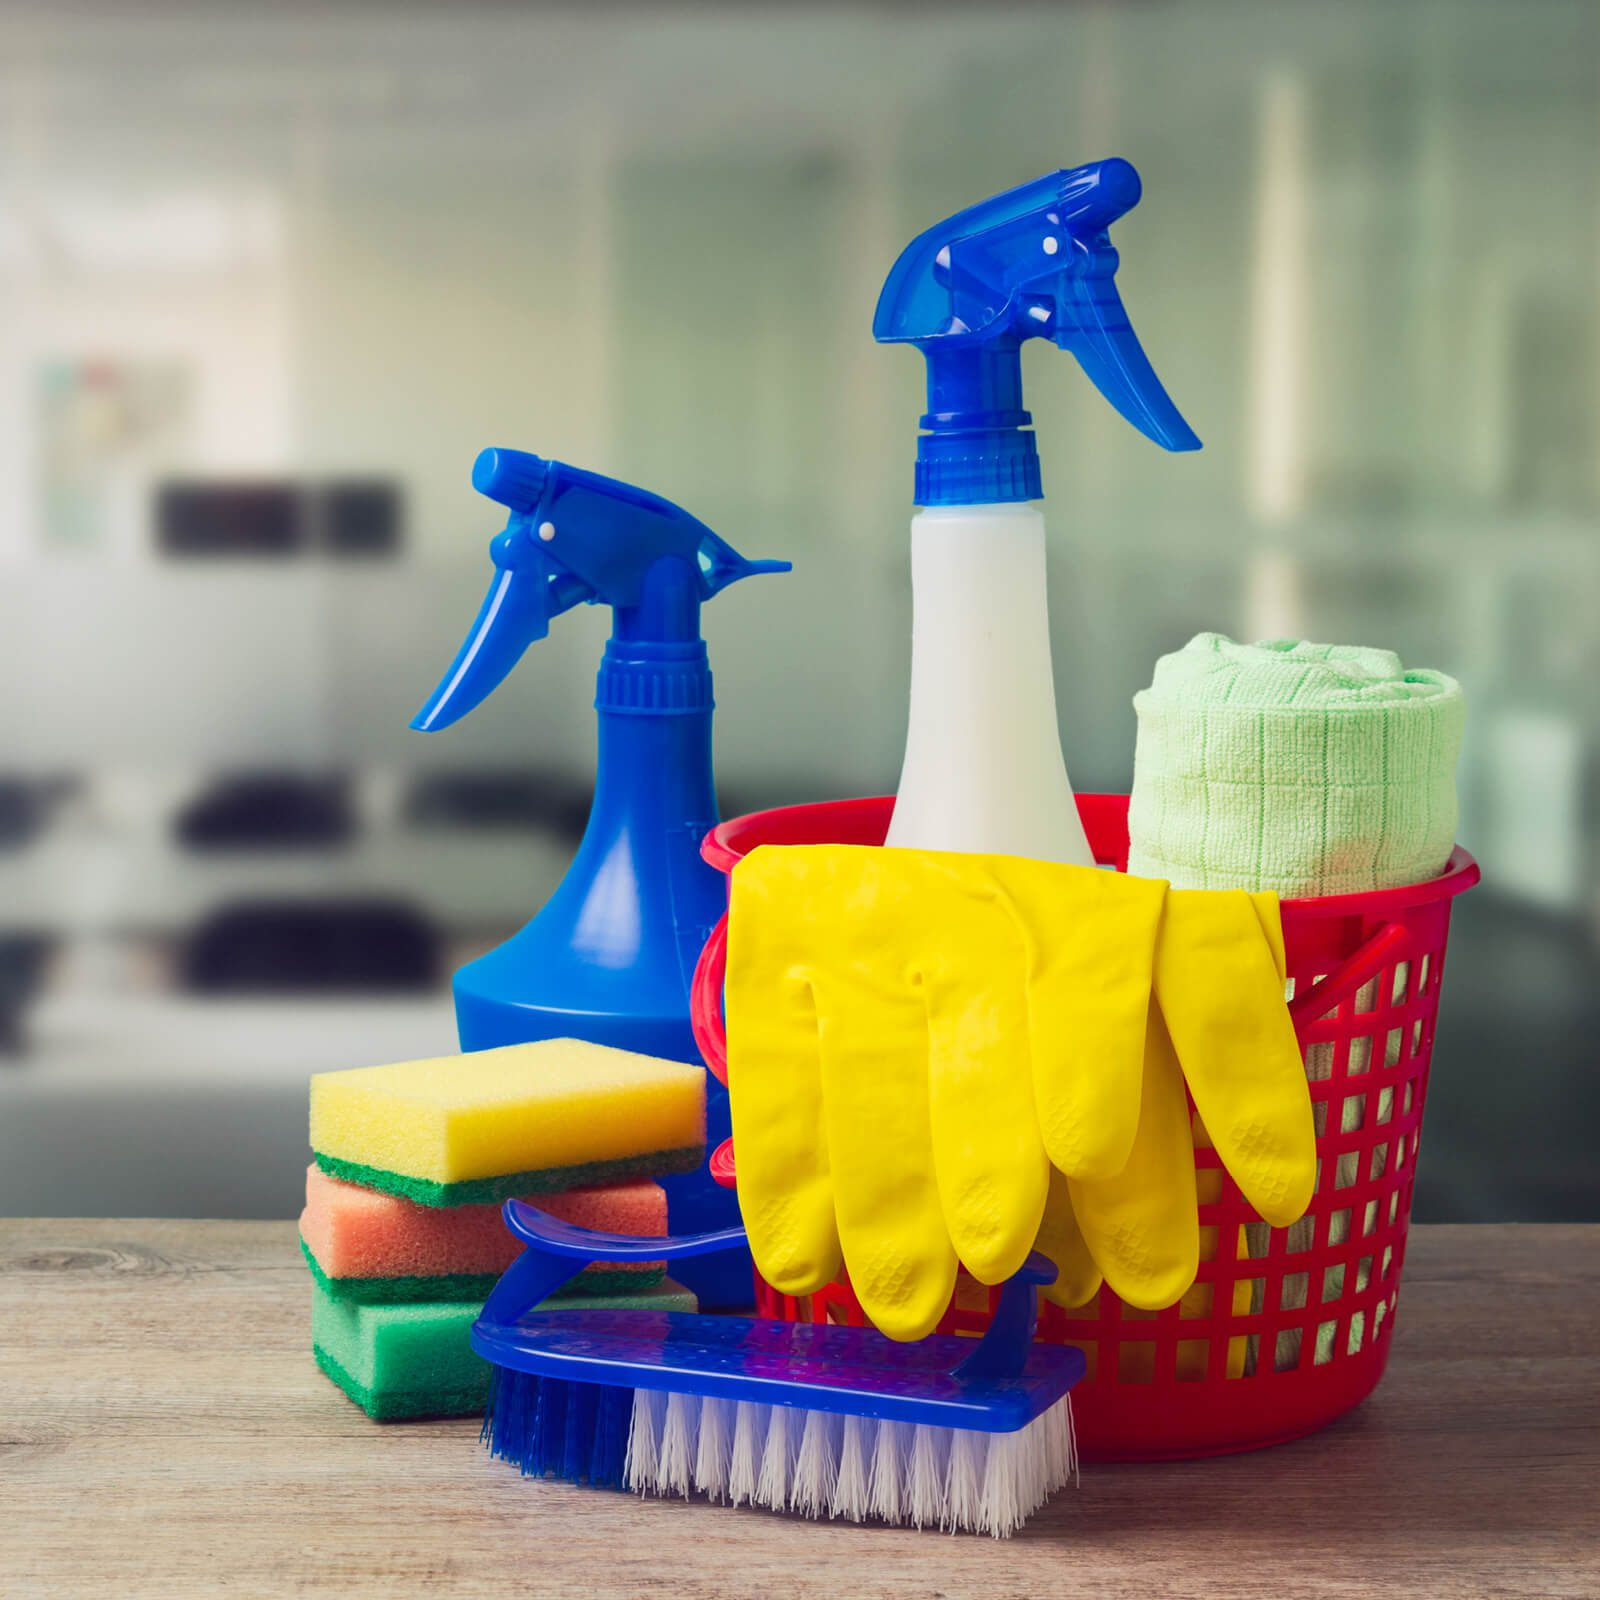 Cleaning supplies | Cherry City Interiors